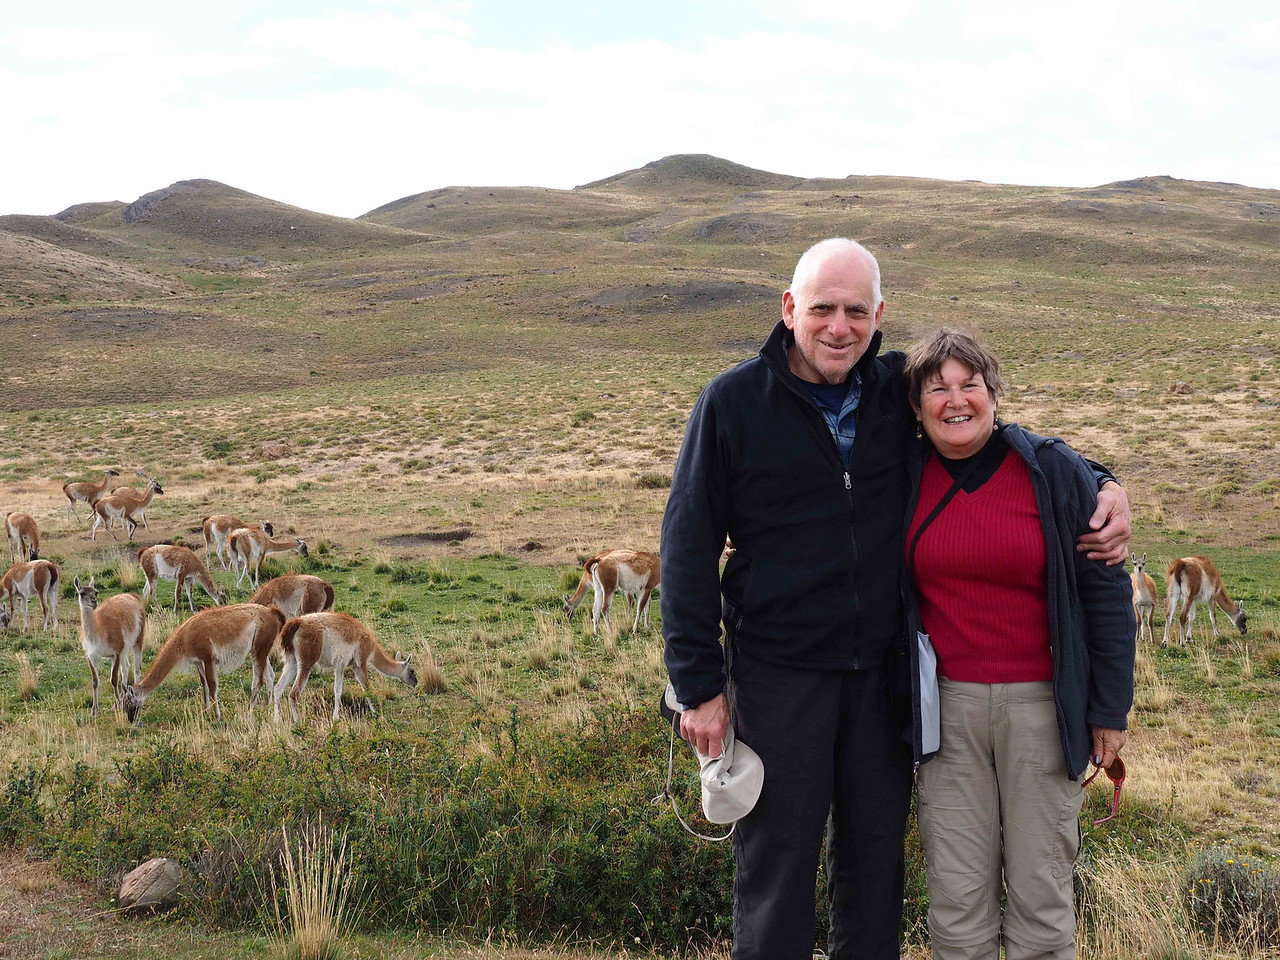 Posing with the Guanacos, Torres del Paine NP